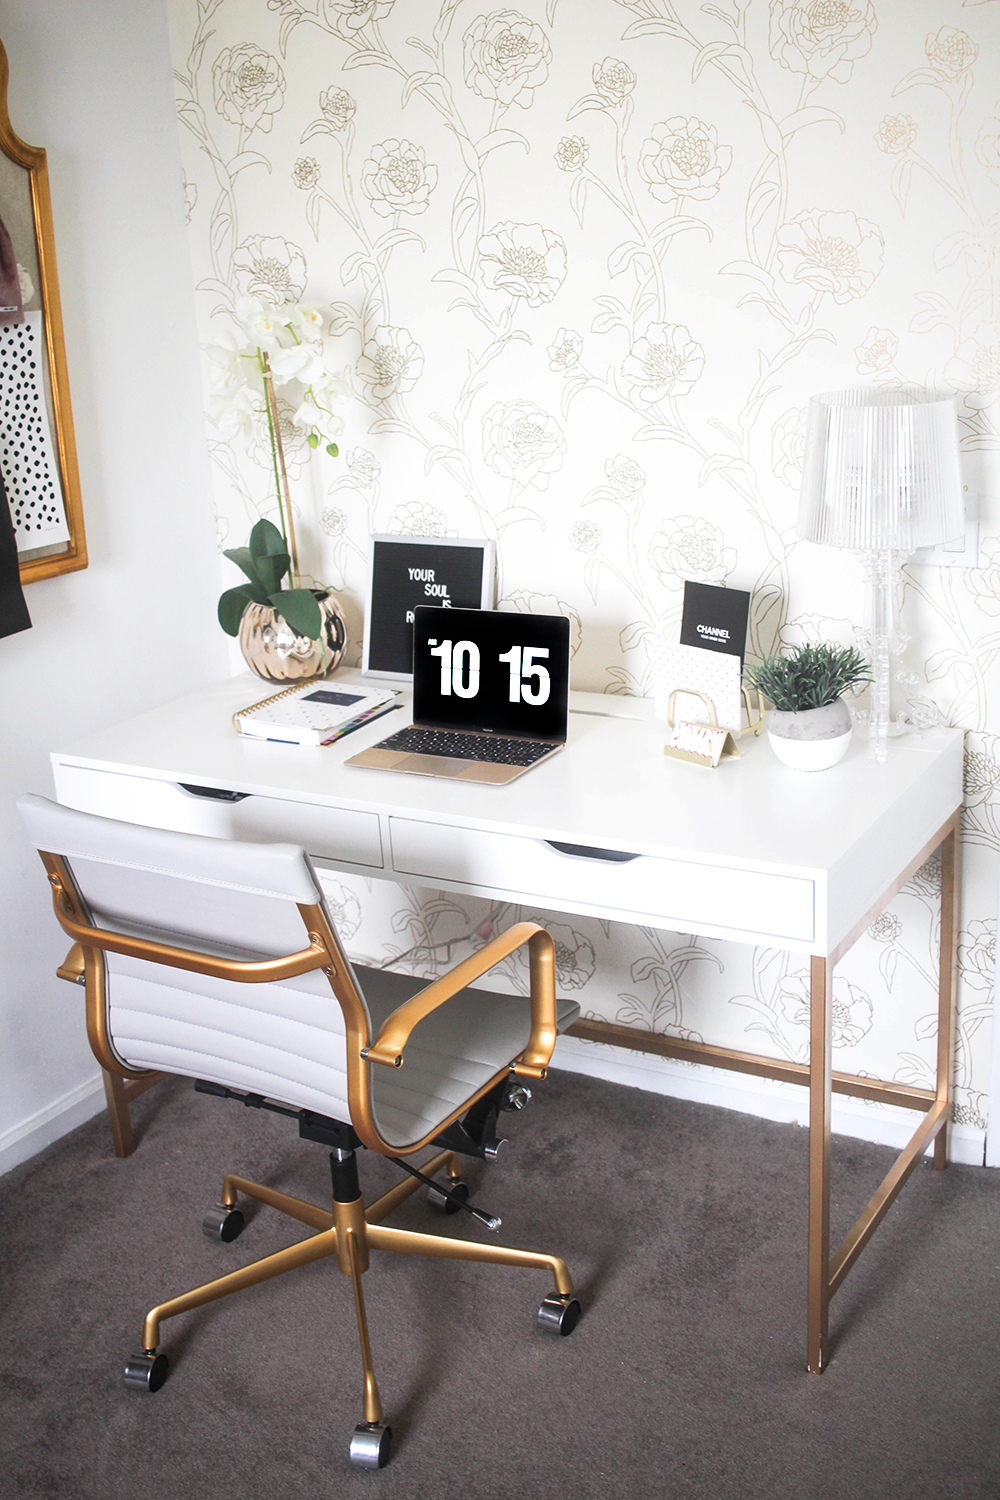 White And Gold Desk Ikea Hack Teresa Caruso Home Office Decor Gold Home Decor White Office Decor